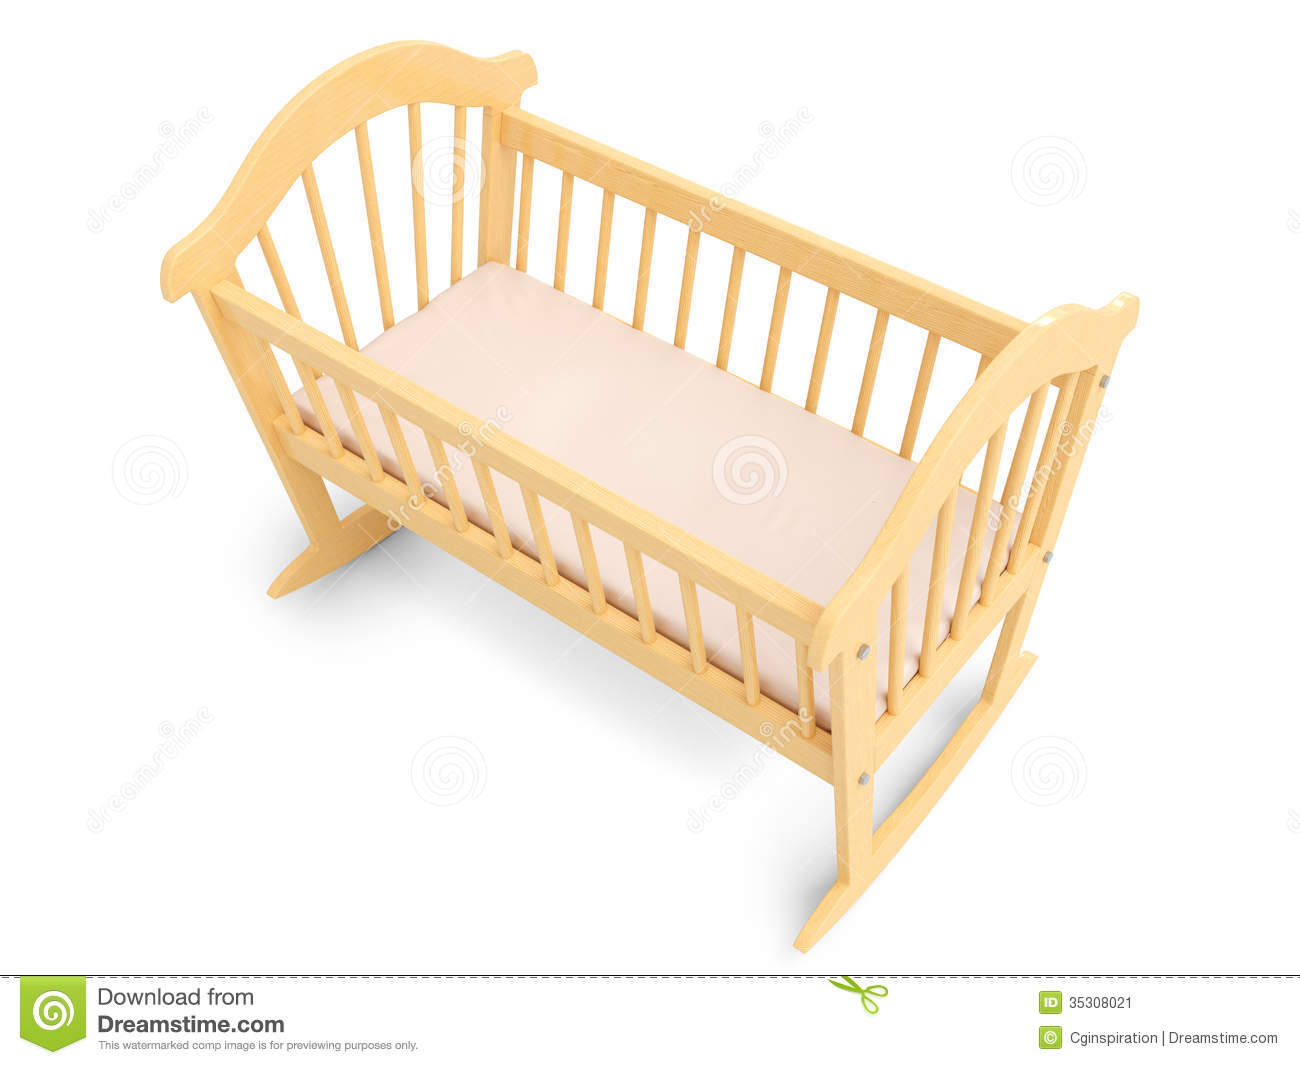 Wooden crib for babies - Wooden Baby Crib